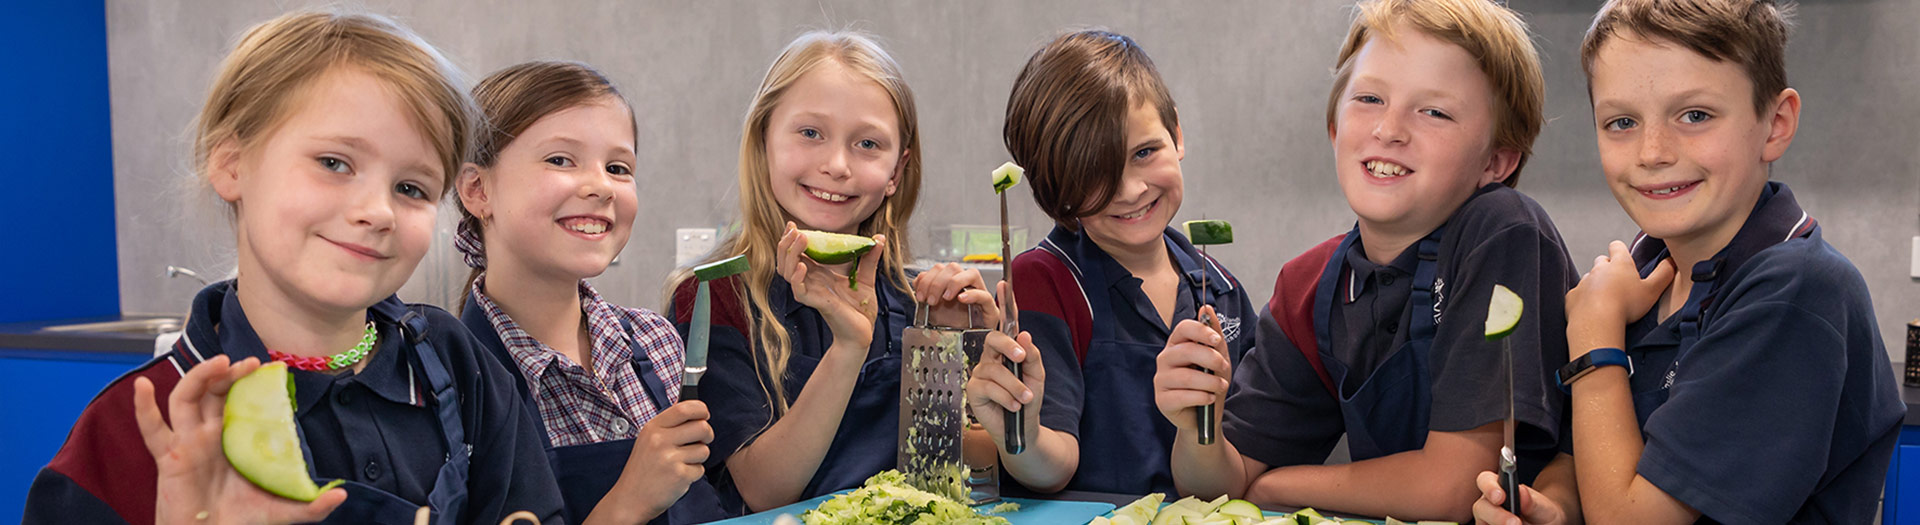 smiling students grating zucchini in a school kitchen